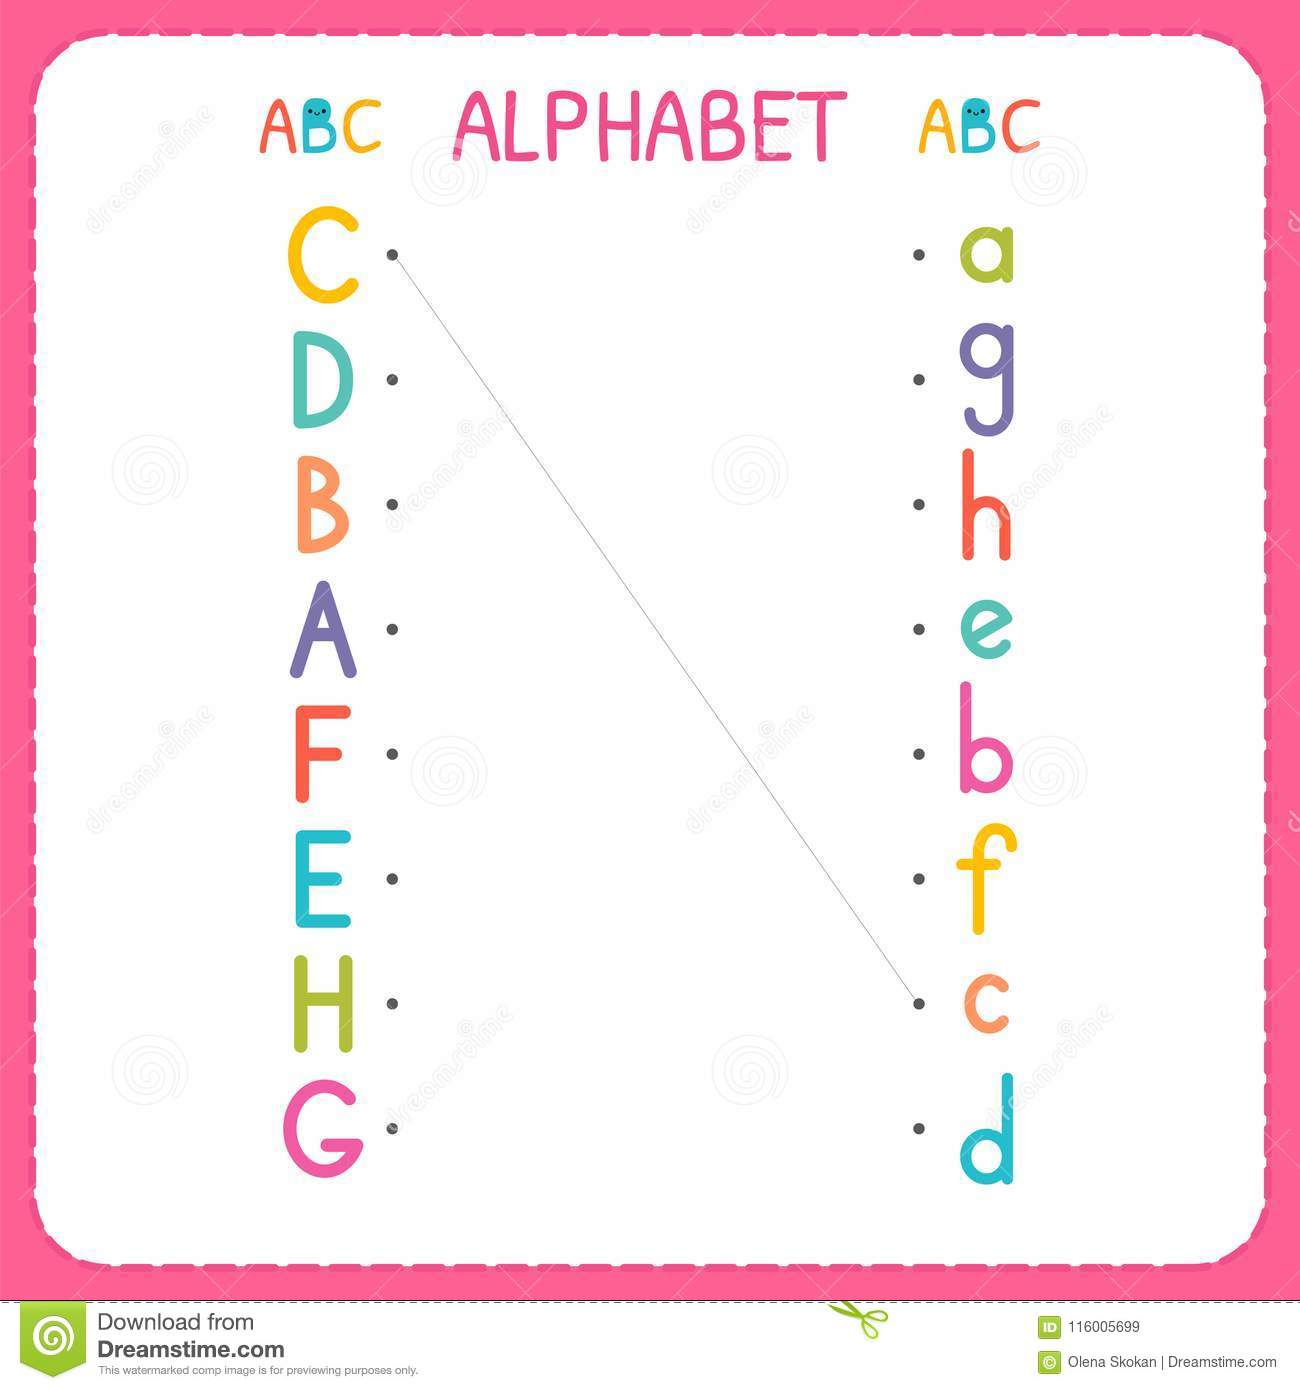 Join Each Capital Letter With The Lowercase Letter From A